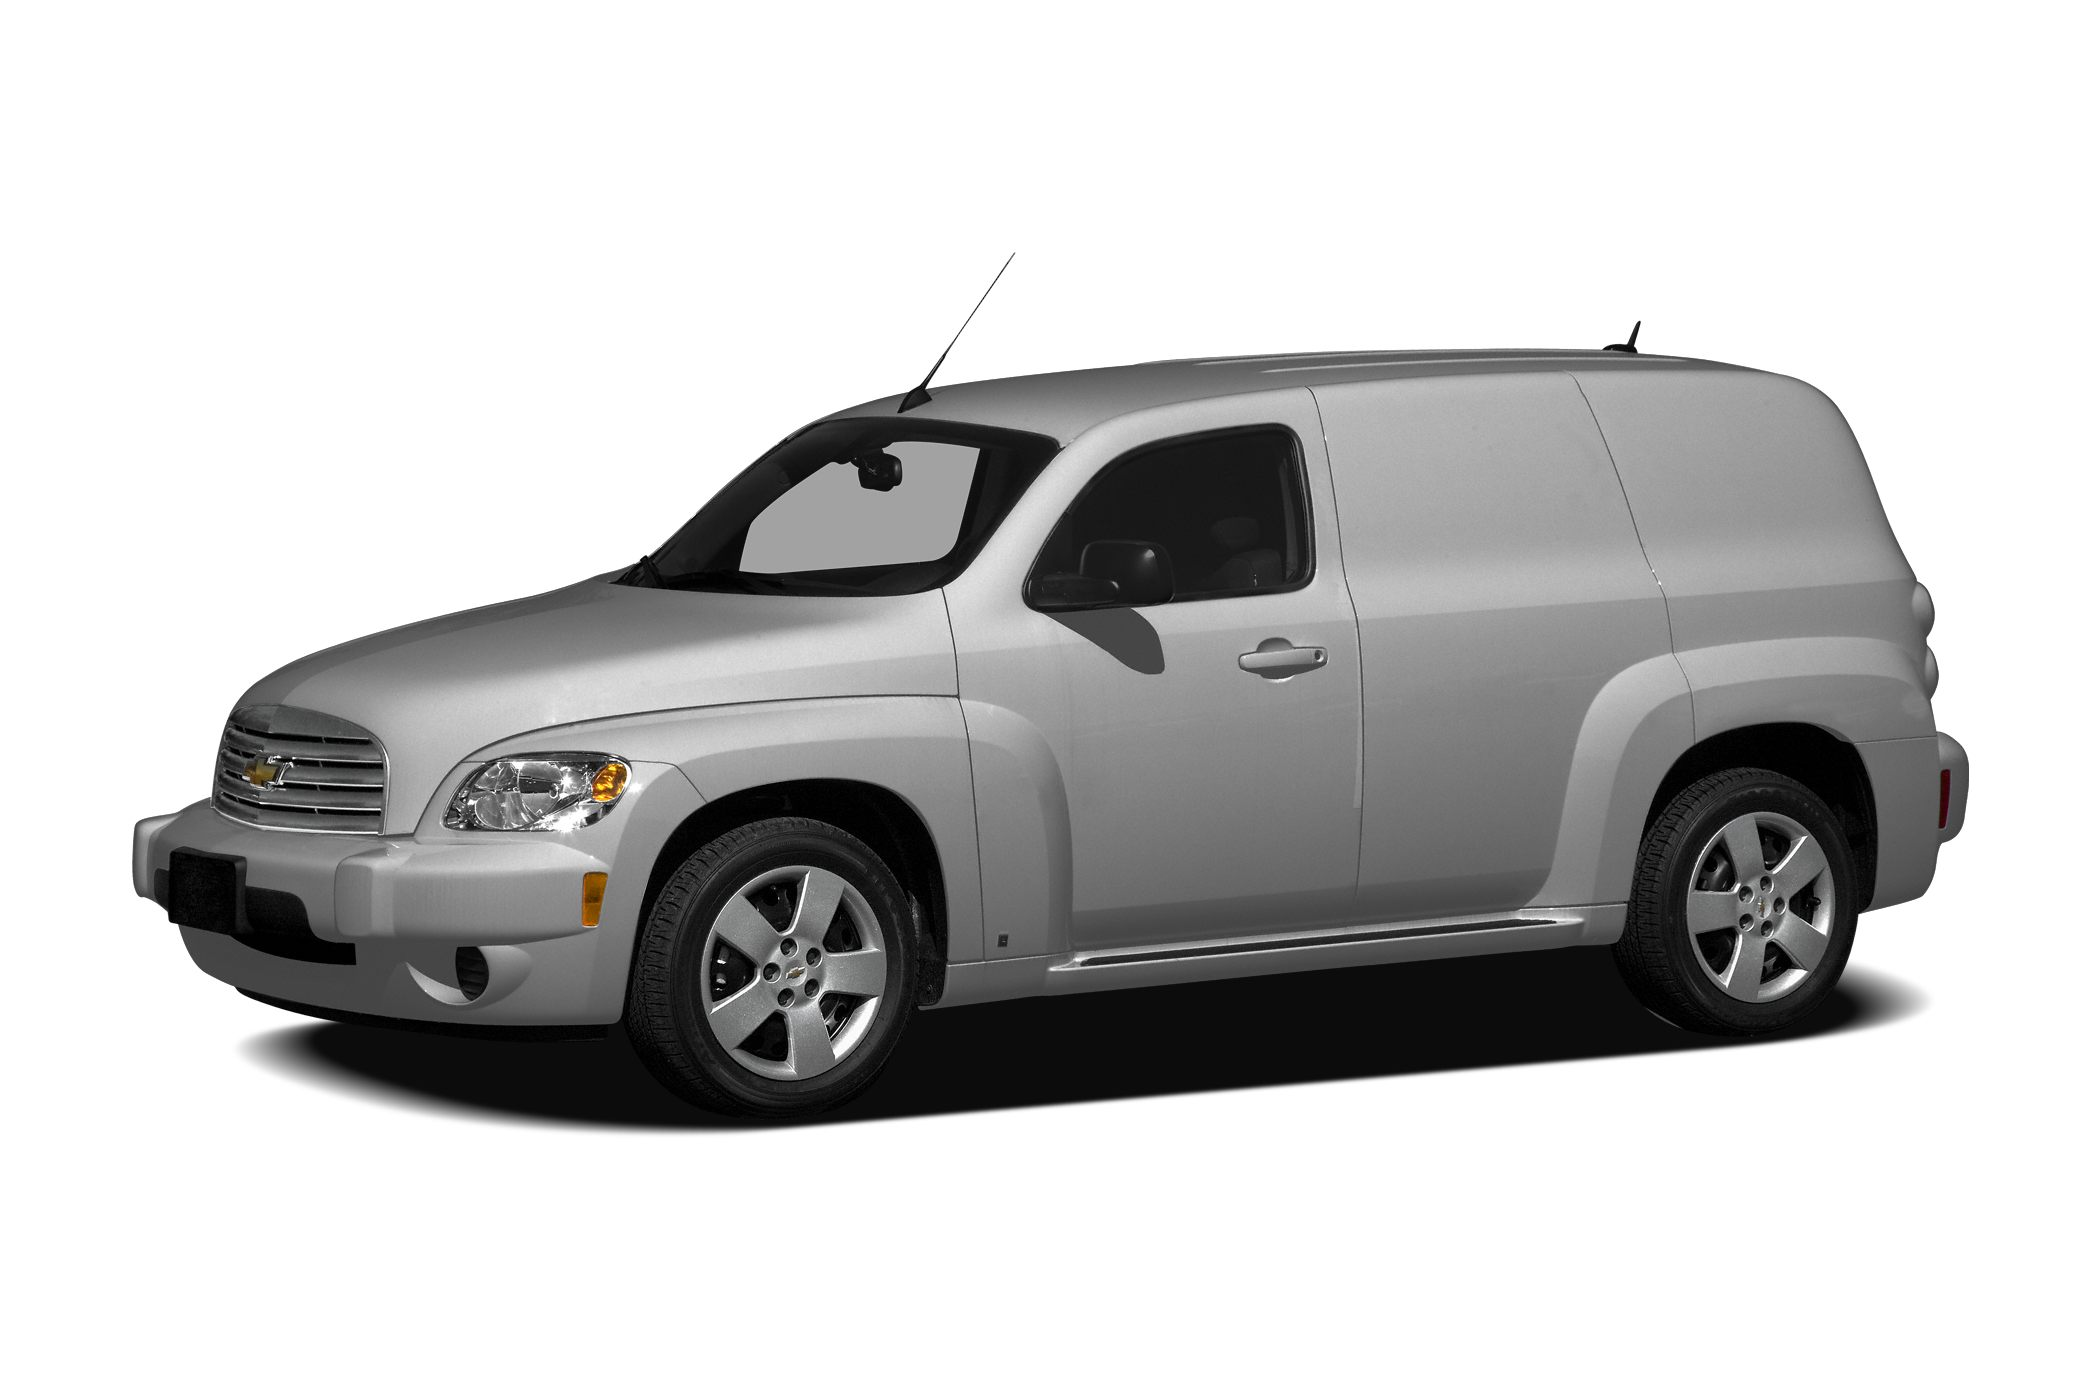 2010 Chevrolet HHR LS Panel Wagon for sale in Stillwater for $6,250 with 123,191 miles.